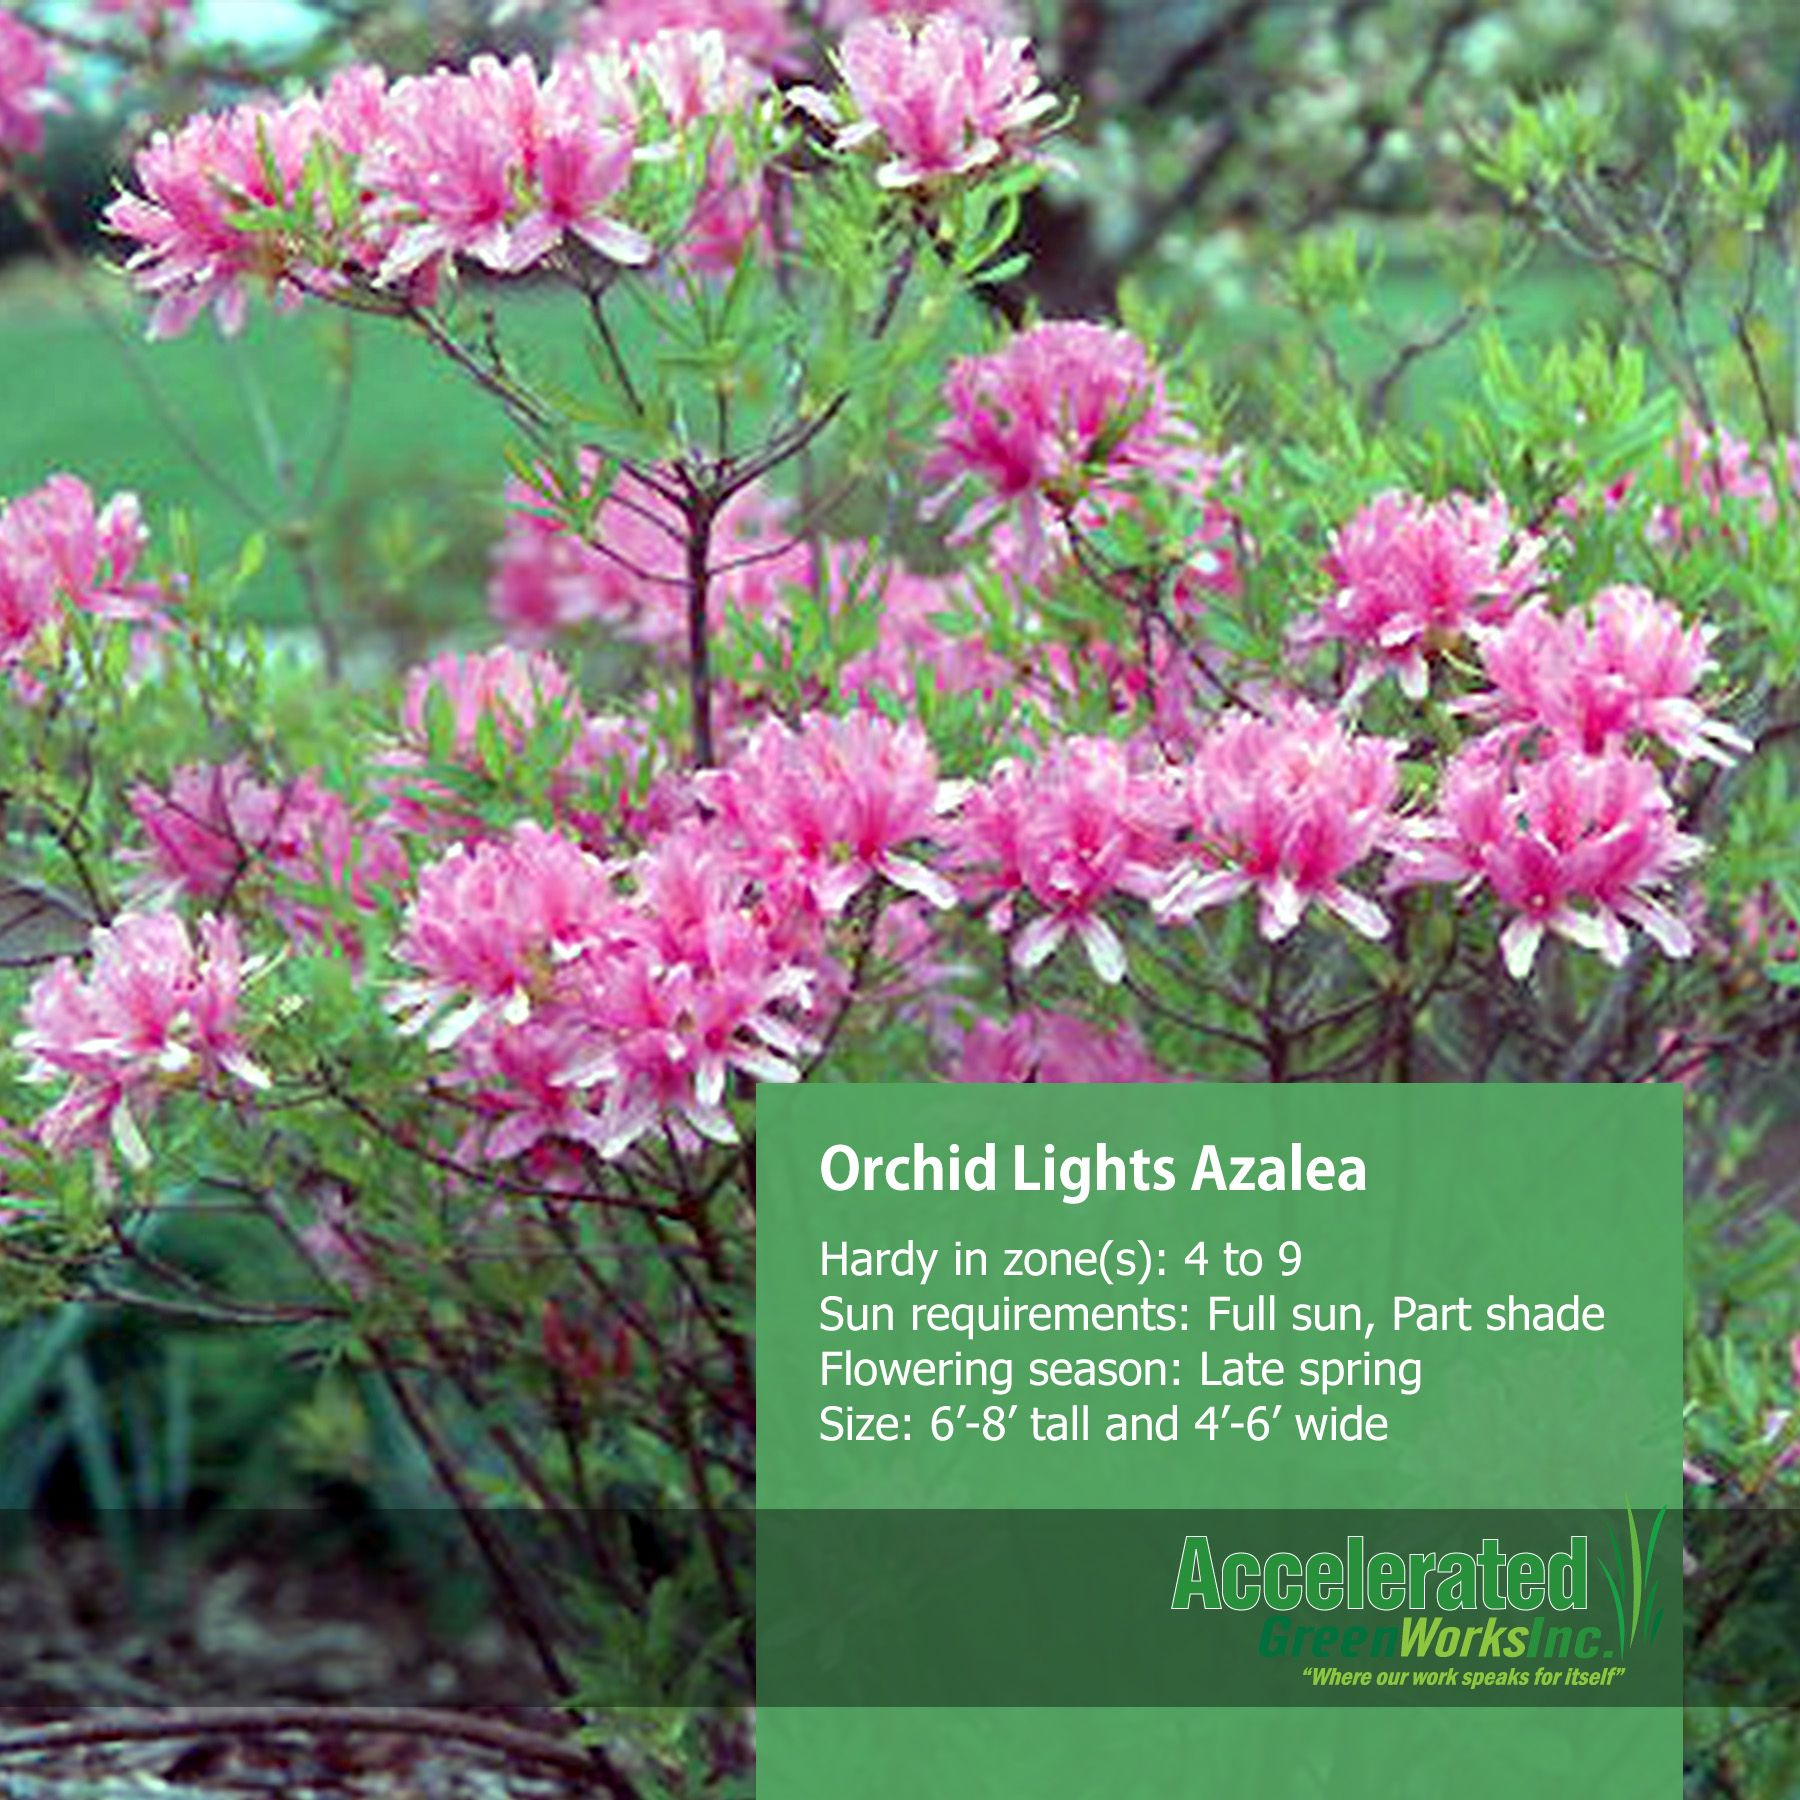 Orchid Lights Azalea Bought One Of These At Horrock S 06 29 17 This Type Is Rated For Zone 4 So Should Be Great For My Zone 5 Garden Azaleas Orchids Shrubs